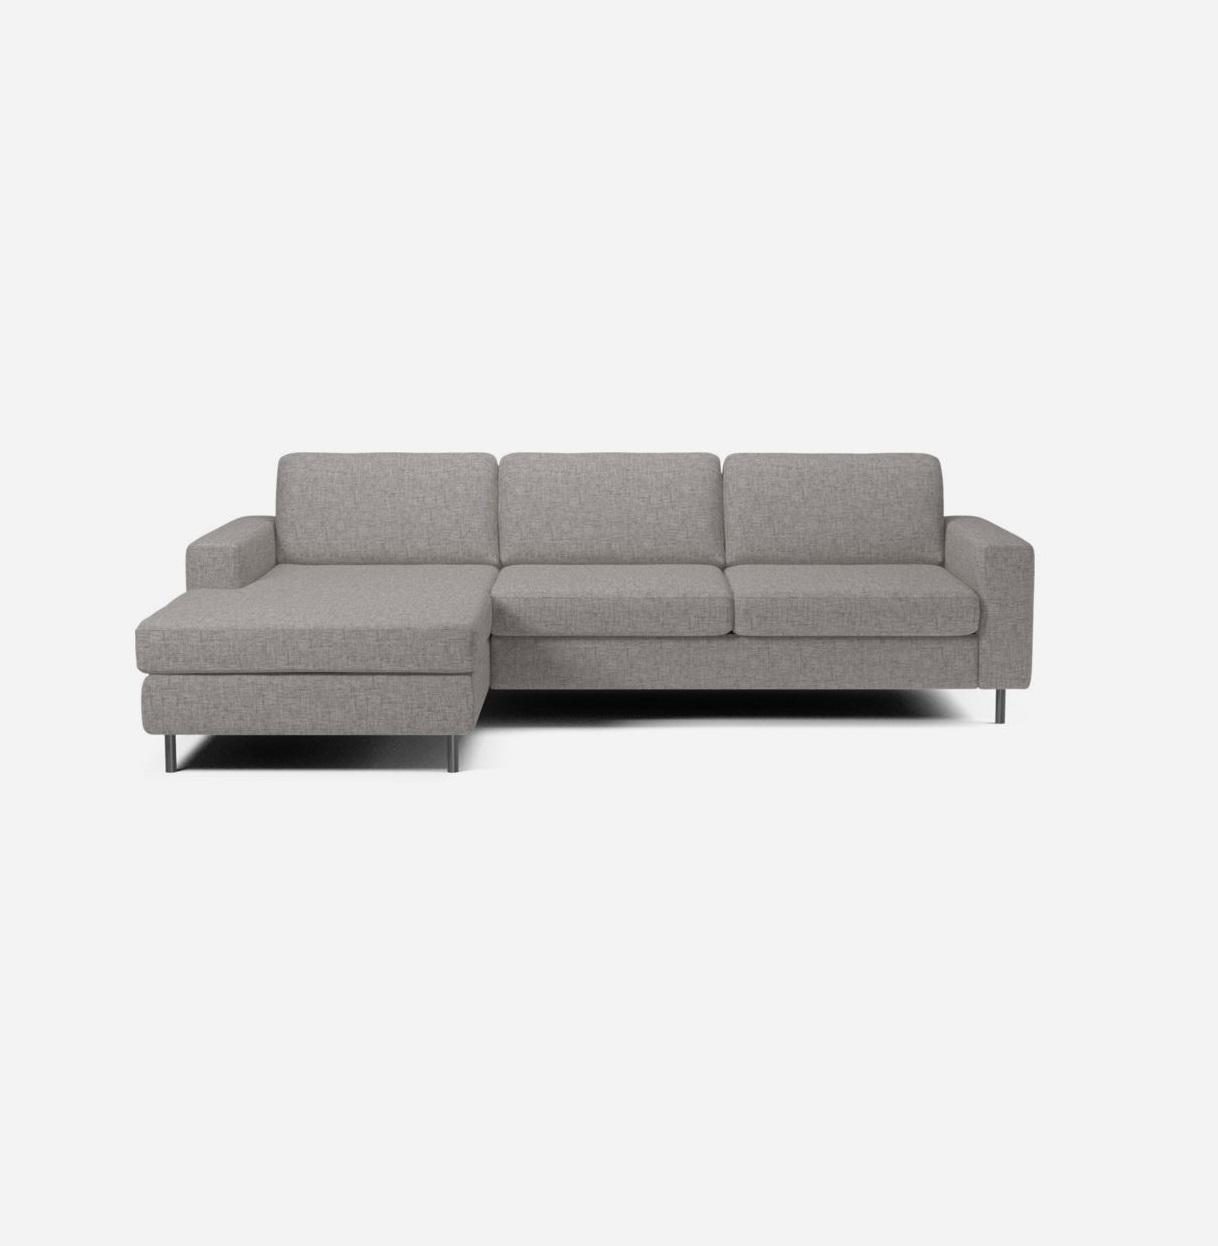 four seat sofa with chaise sectional sofas okc ok scandinavia 3 3½ 4 seater longue dekorama